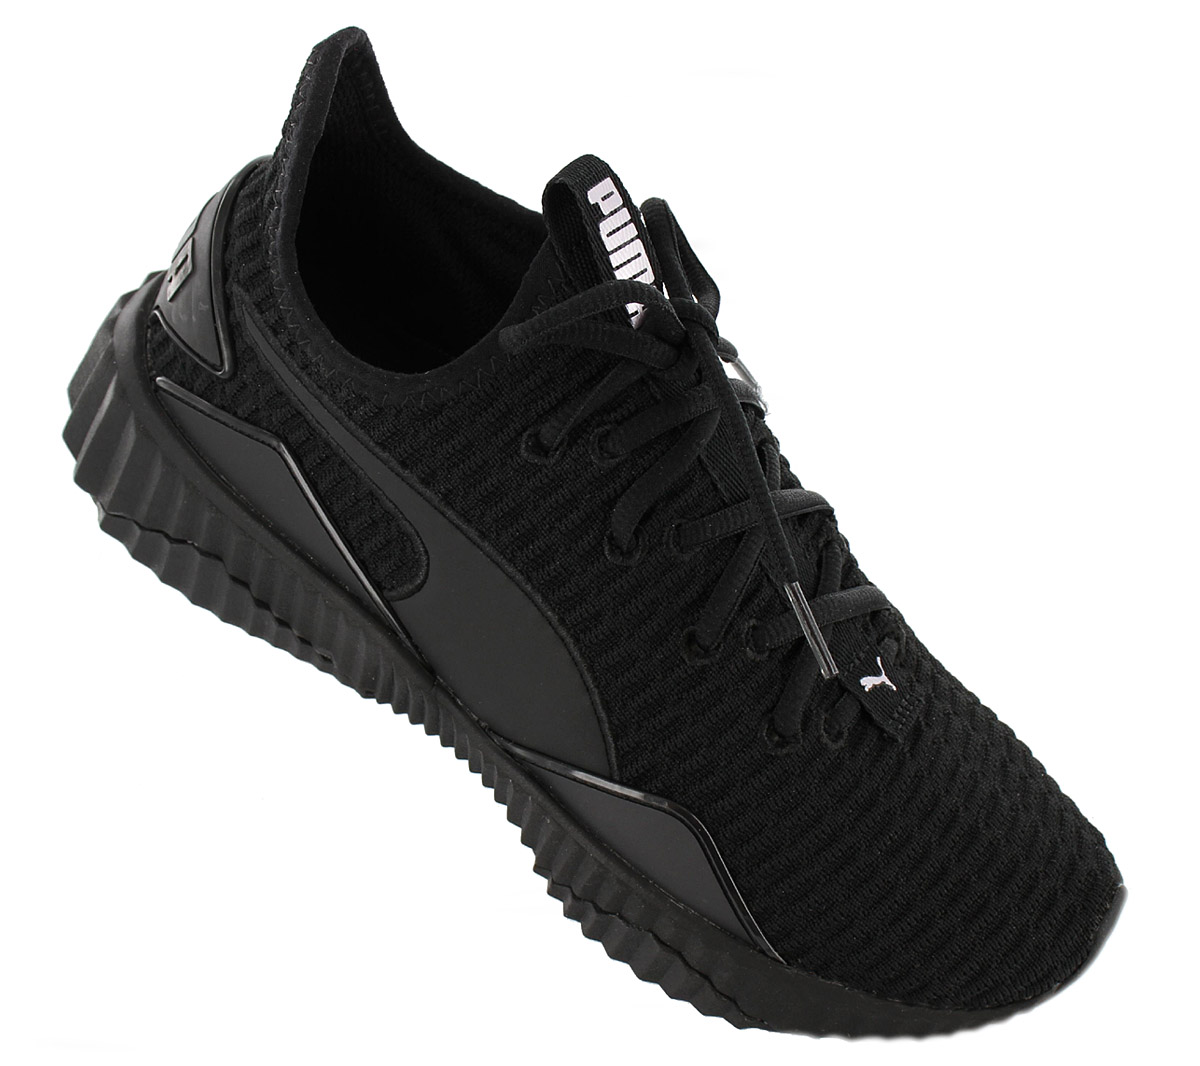 abd82651636 Puma Defy Sneaker Fashion Shoes Black Leisure Shoe 190949-10 ...